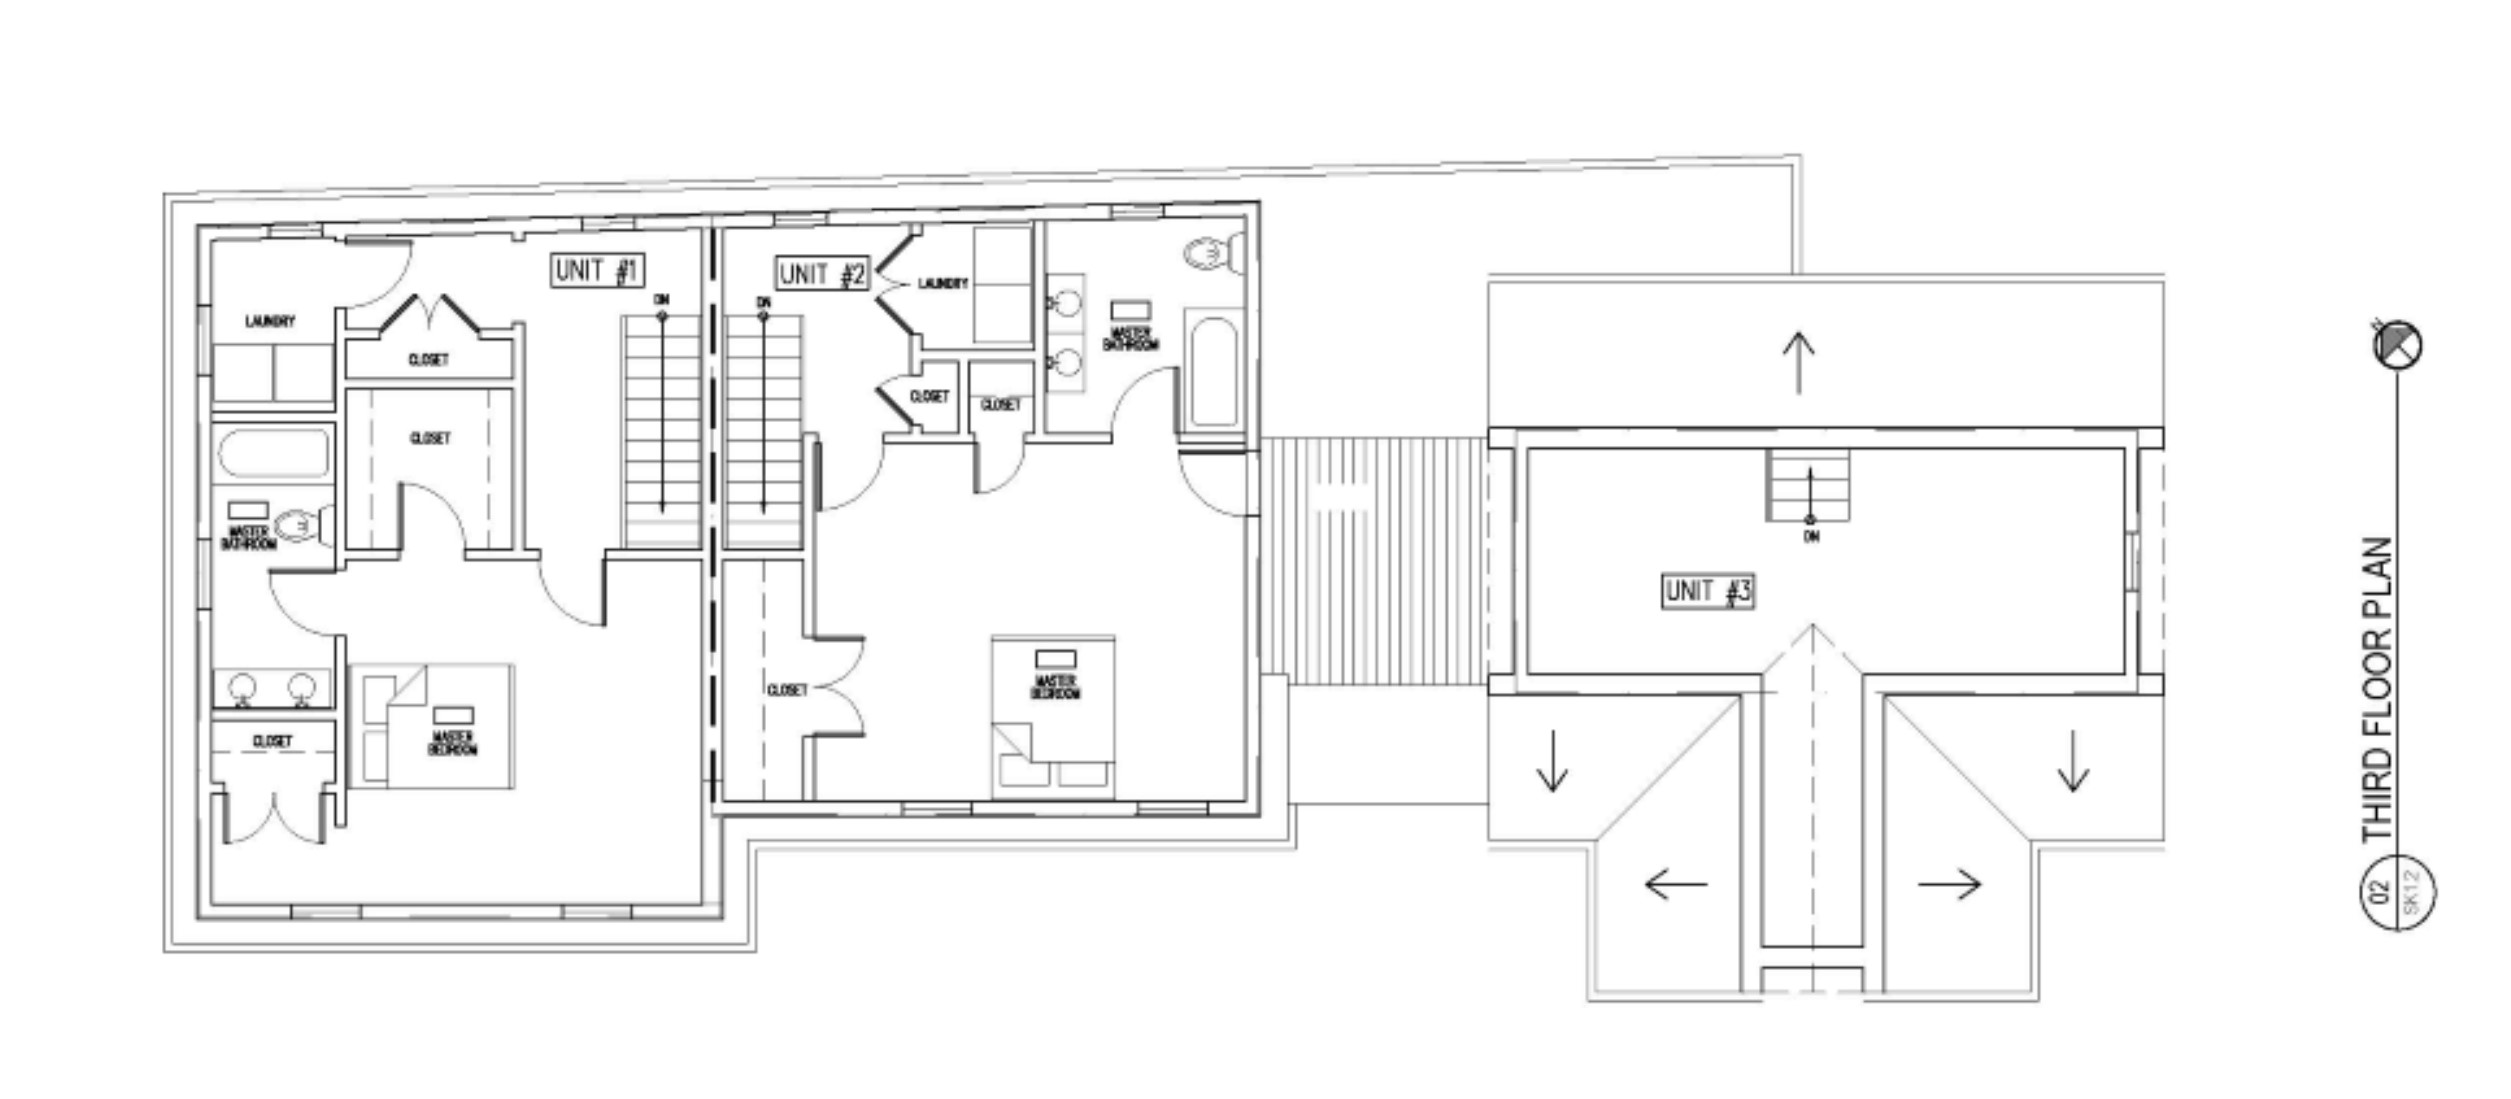 THIRD LEVEL FLOOR PLANS OF TOWNHOUSES AT 75 RUSH ST IN SOMERVILLE